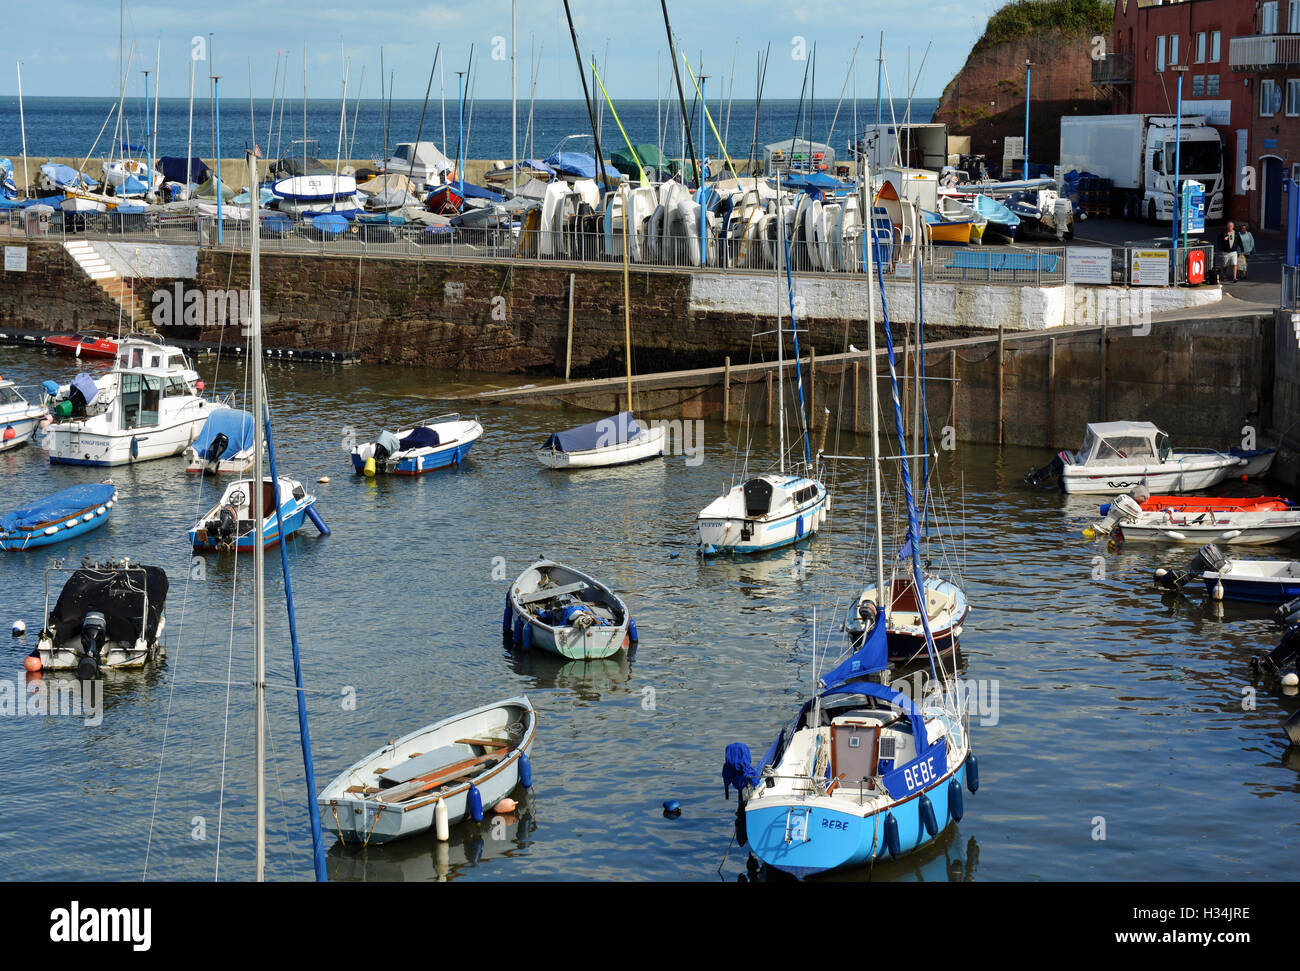 Paignton Harbour with the tide in and bathed in the Autumnal sunlight. - Stock Image